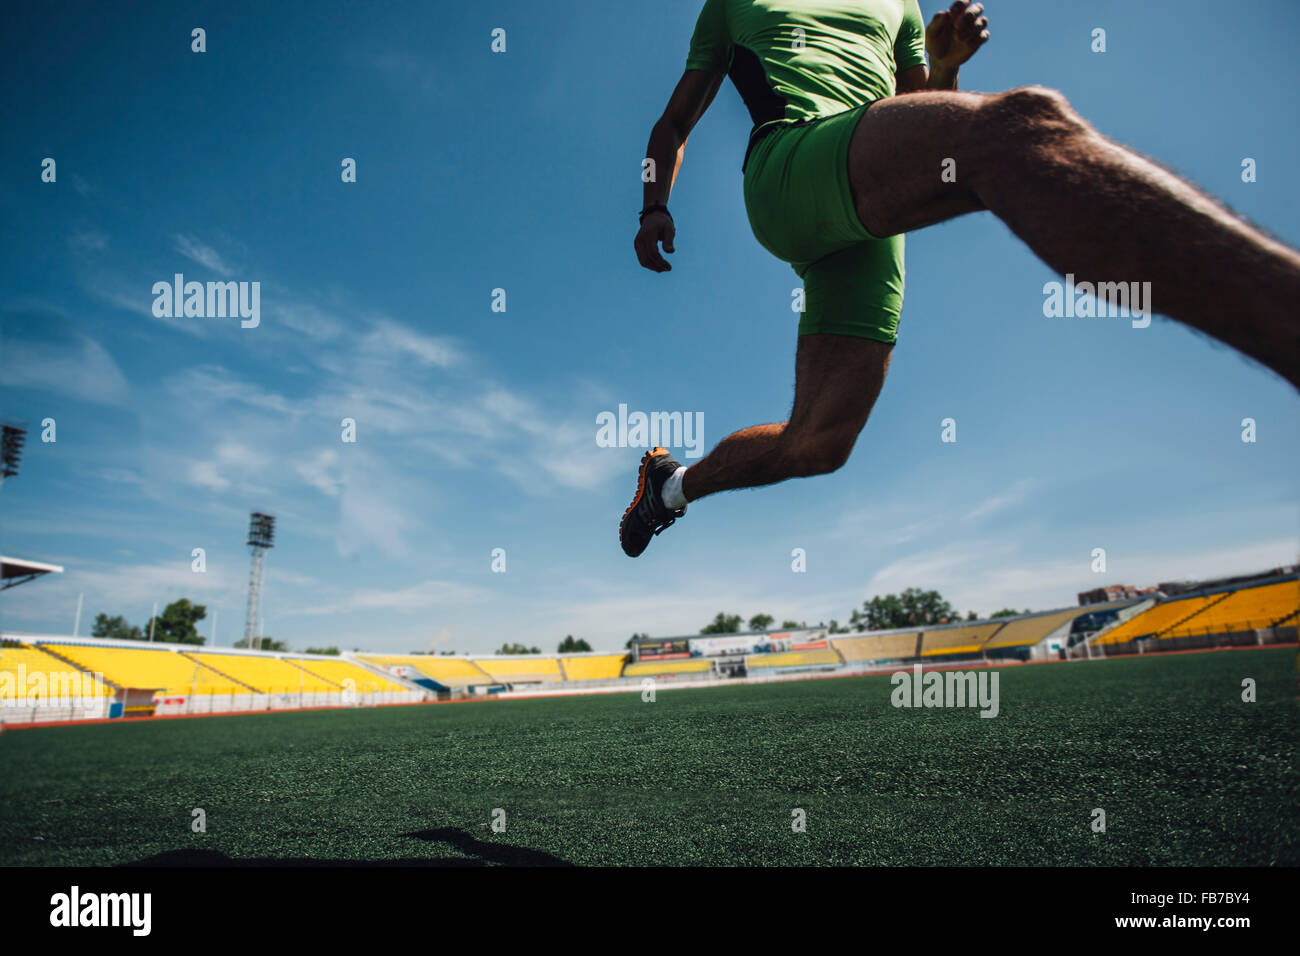 Low section of young male athlete running on field in stadium Stock Photo